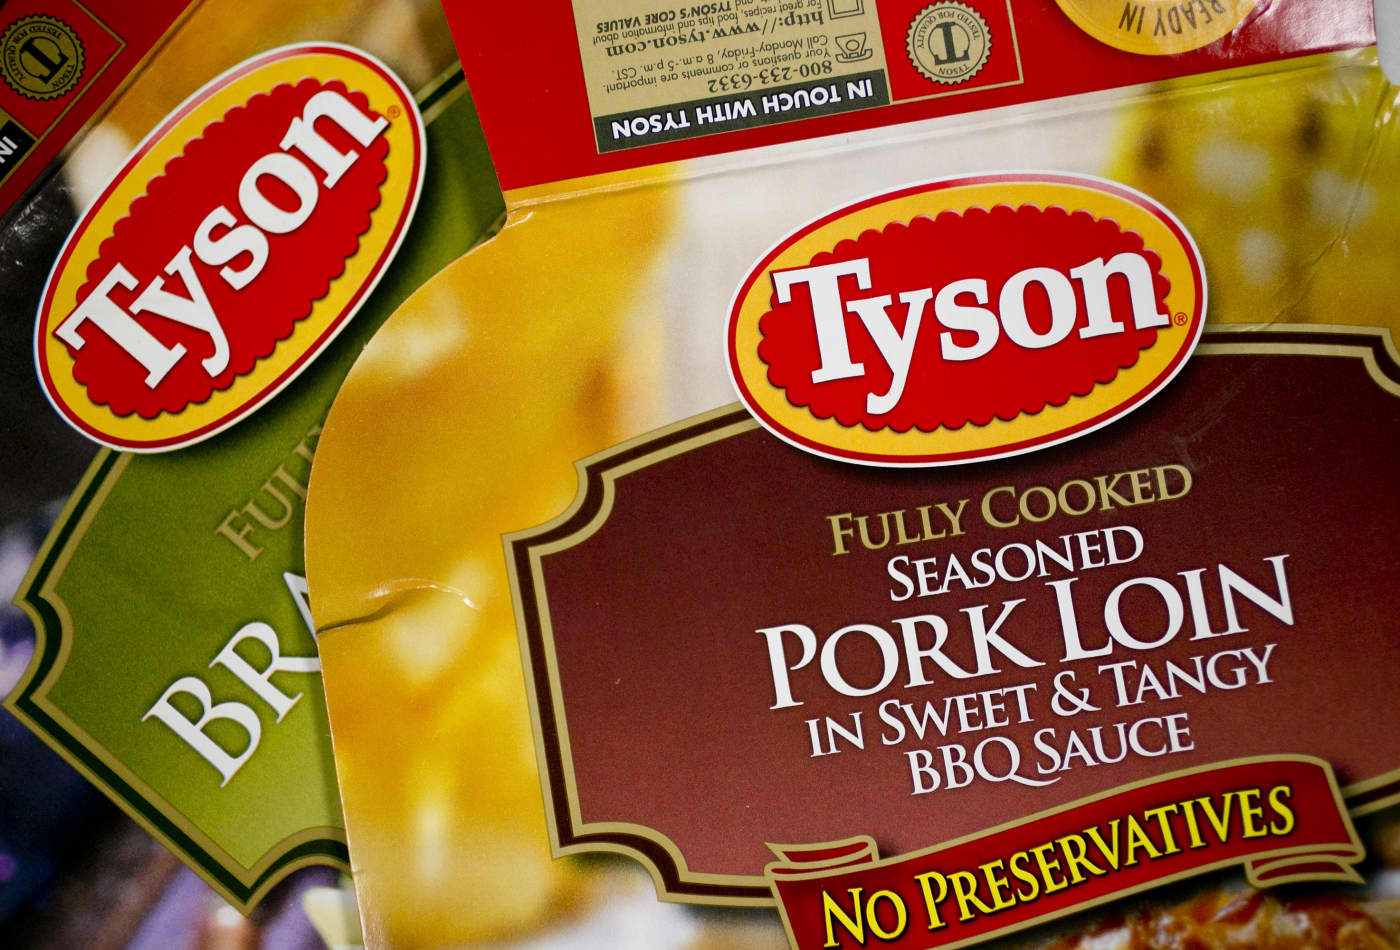 'The food supply chain is breaking': How Tyson Foods has tried to survive coronavirus